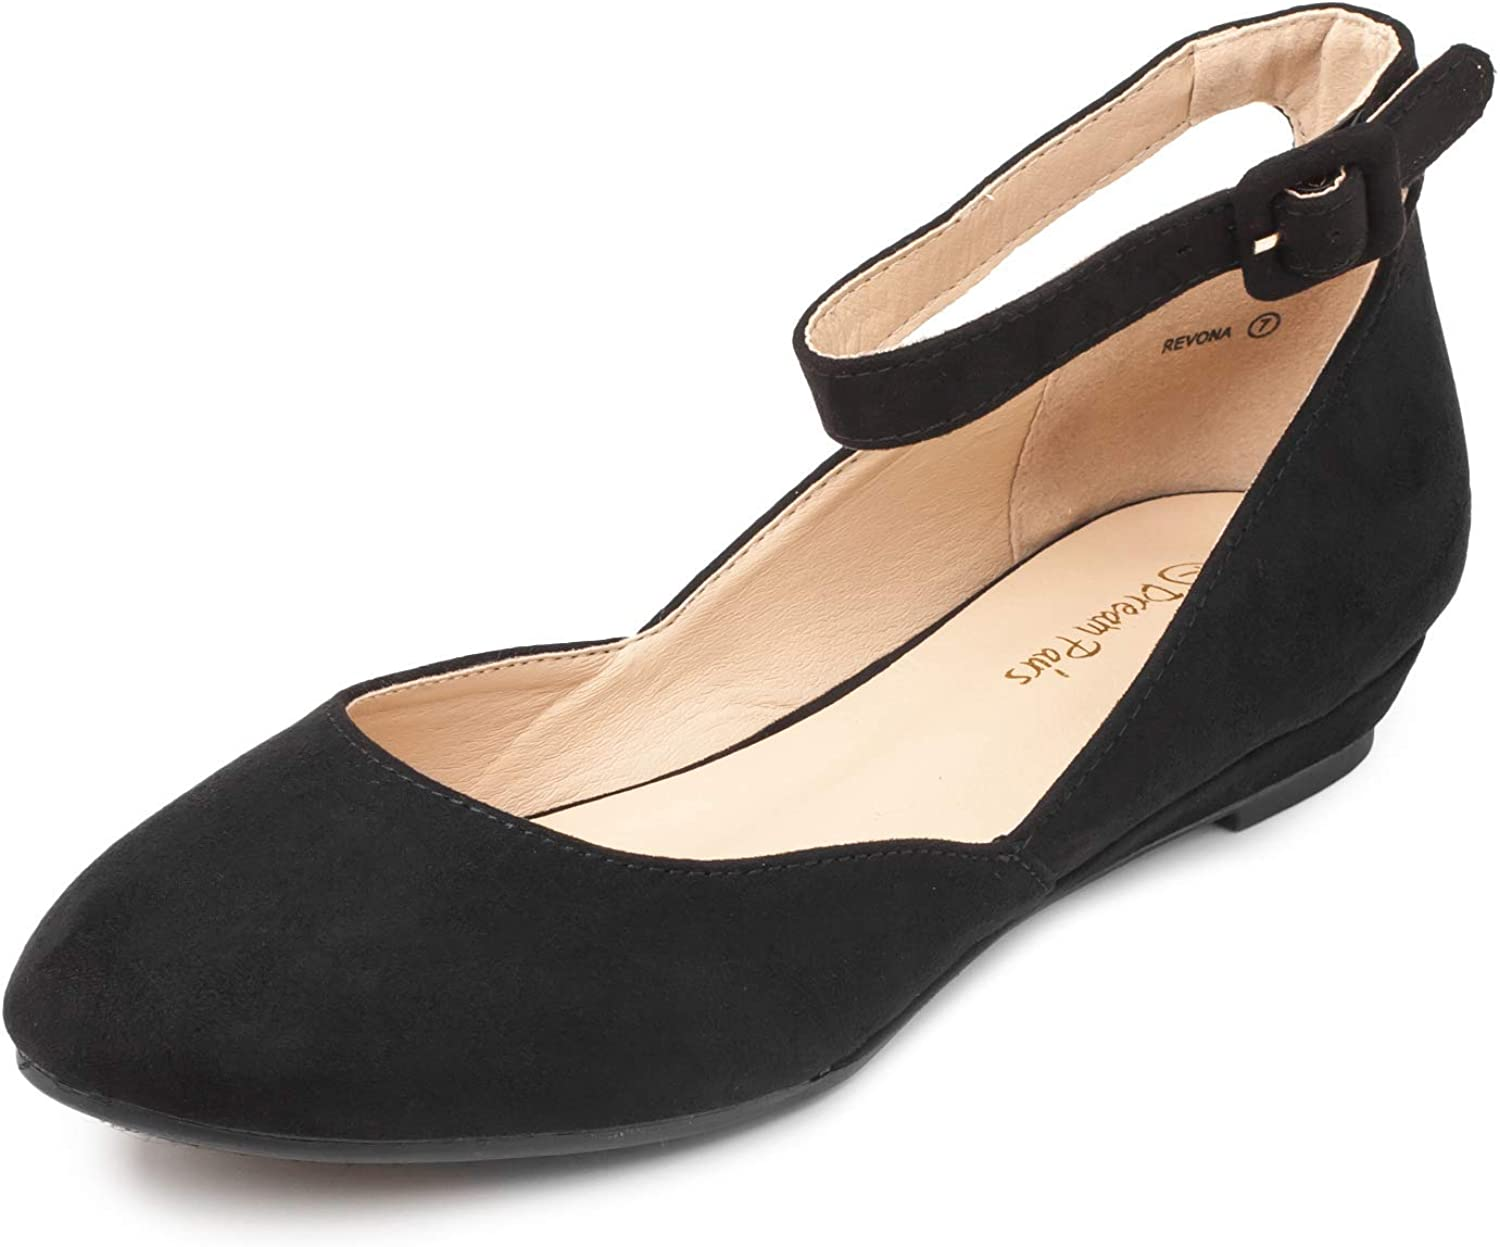 DREAM PAIRS Women's Revona Low Wedge Ankle Strap Flats Shoes